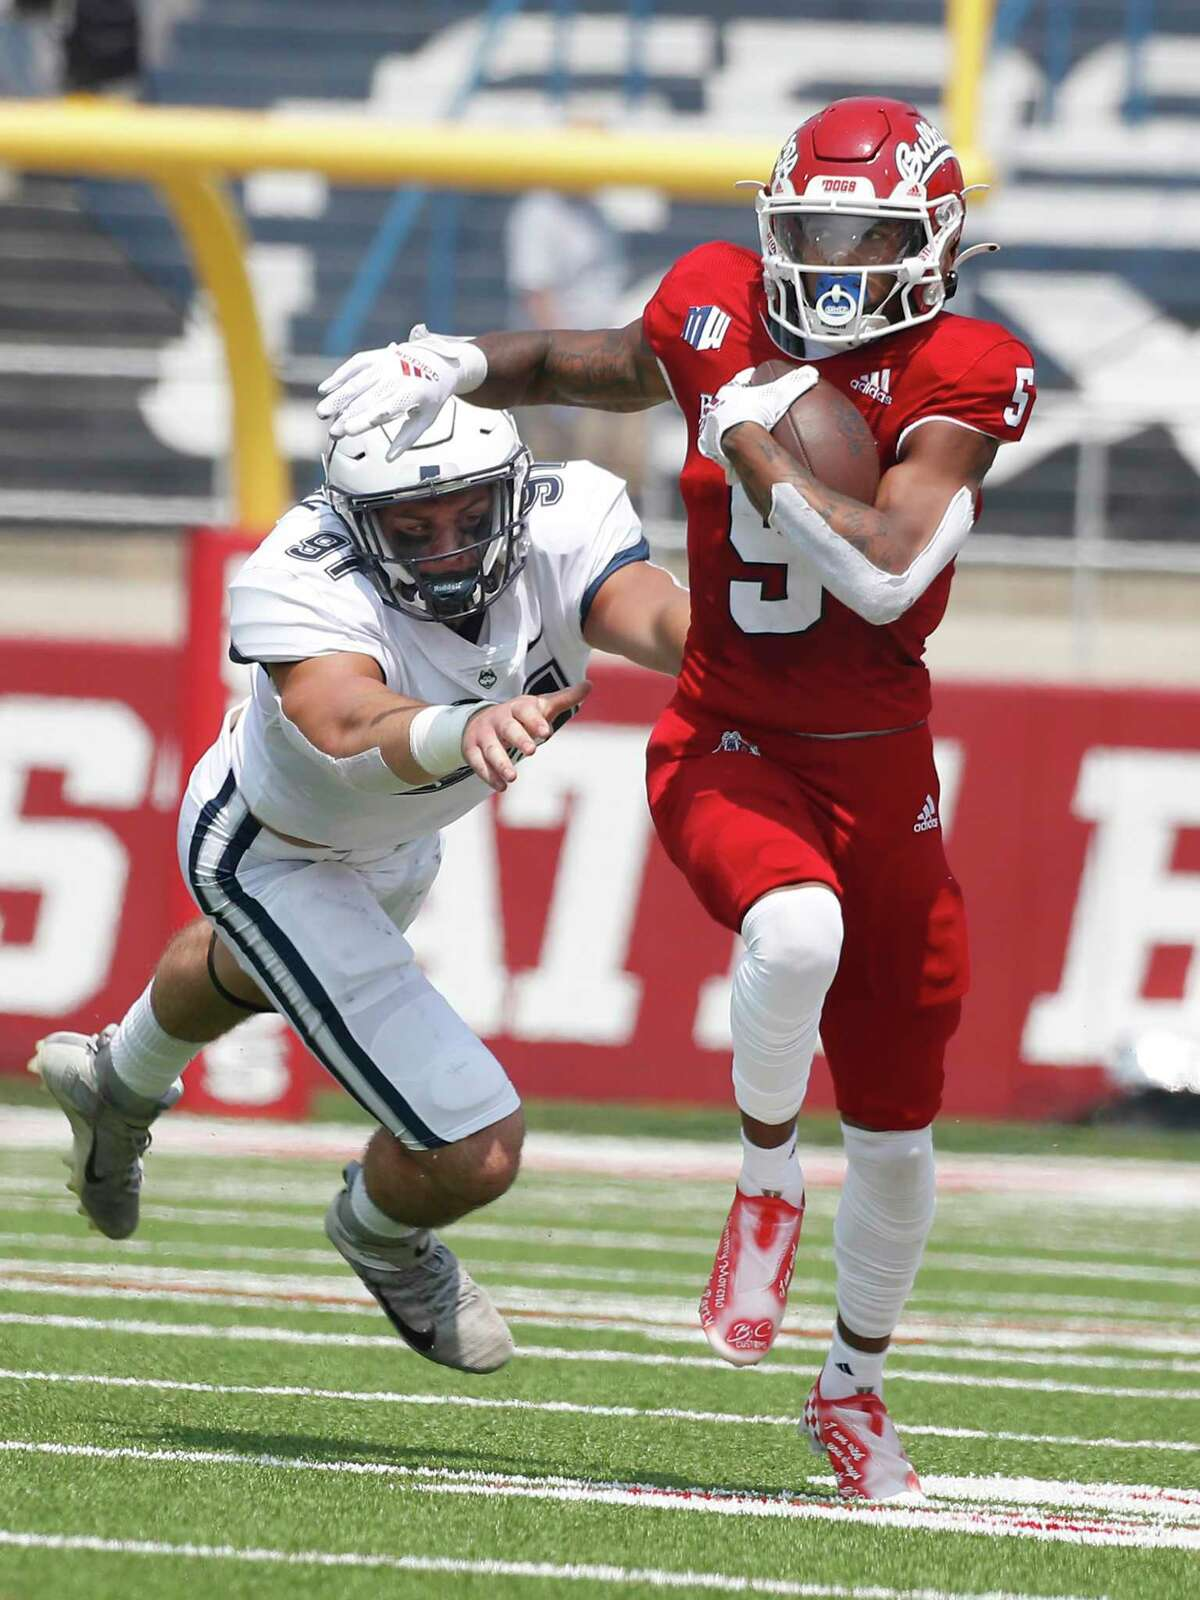 Fresno State wide receiver Jalen Cropper, right, runs past UConn's Collin McCarthy during the first half Saturday in Fresno, Calif.